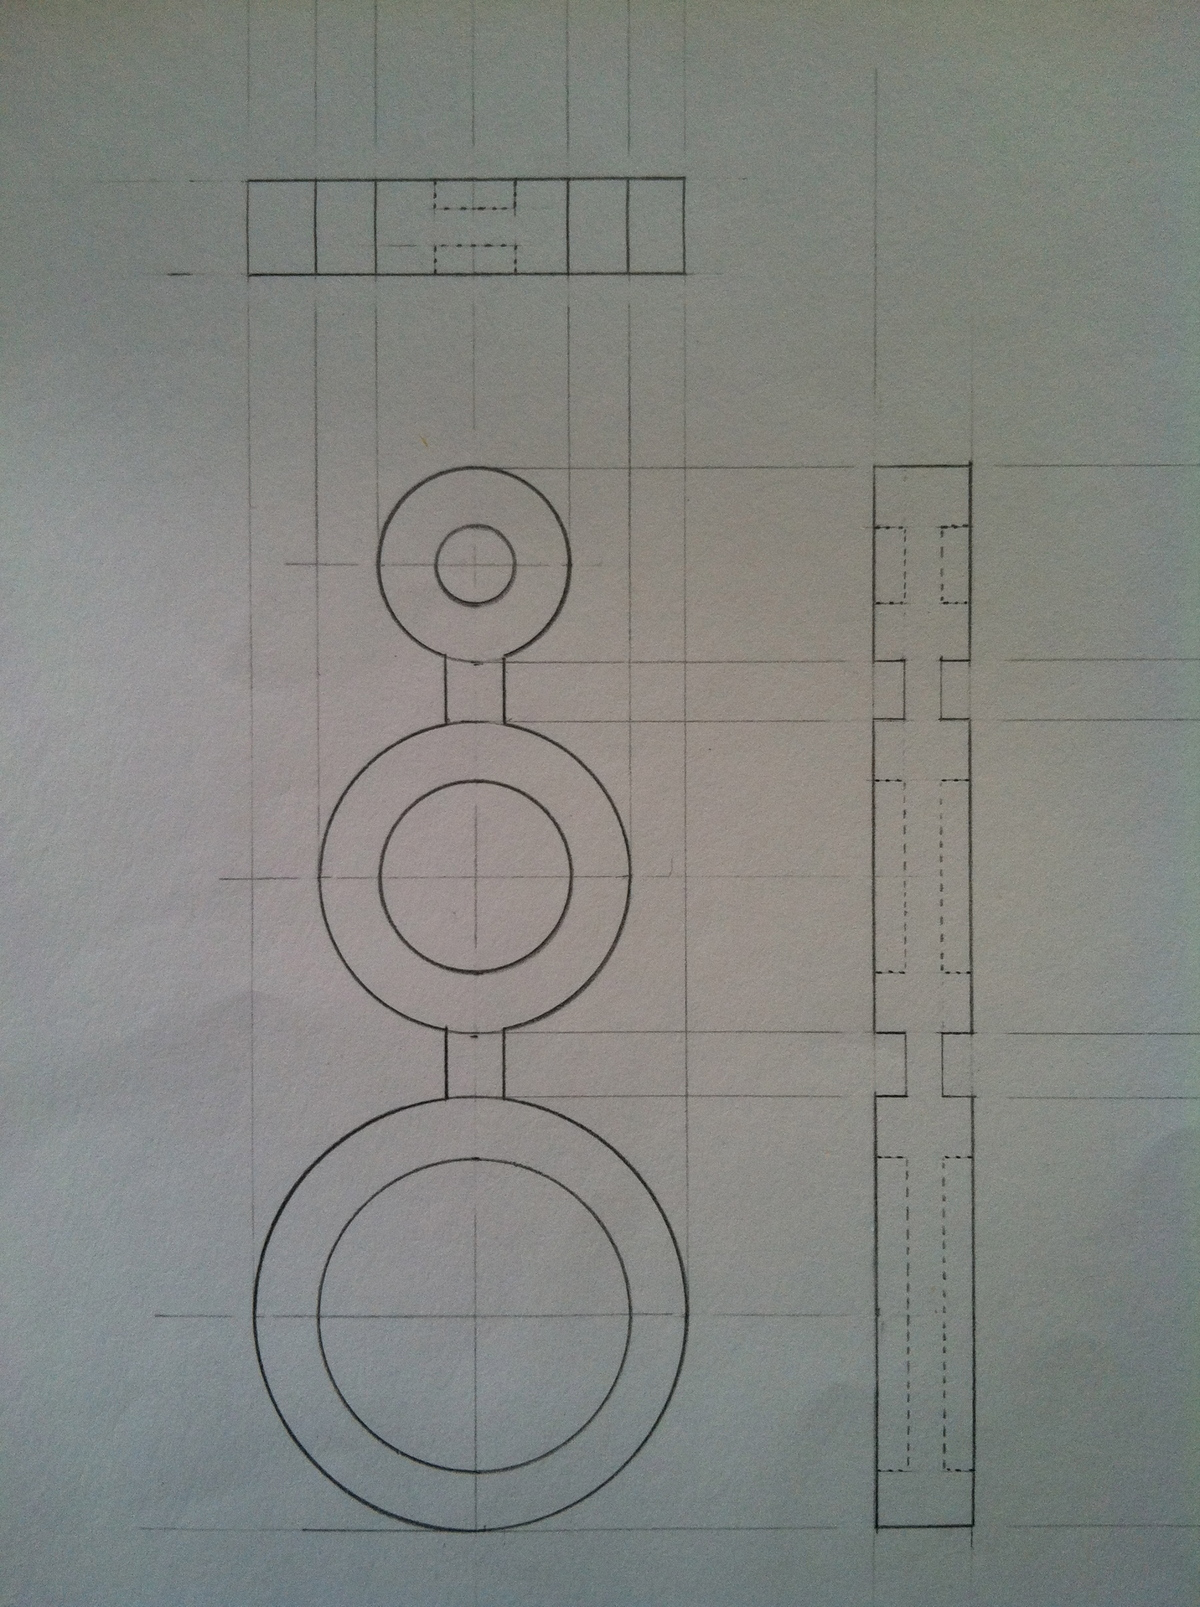 initial drafting design of the multifunction puzzle piece